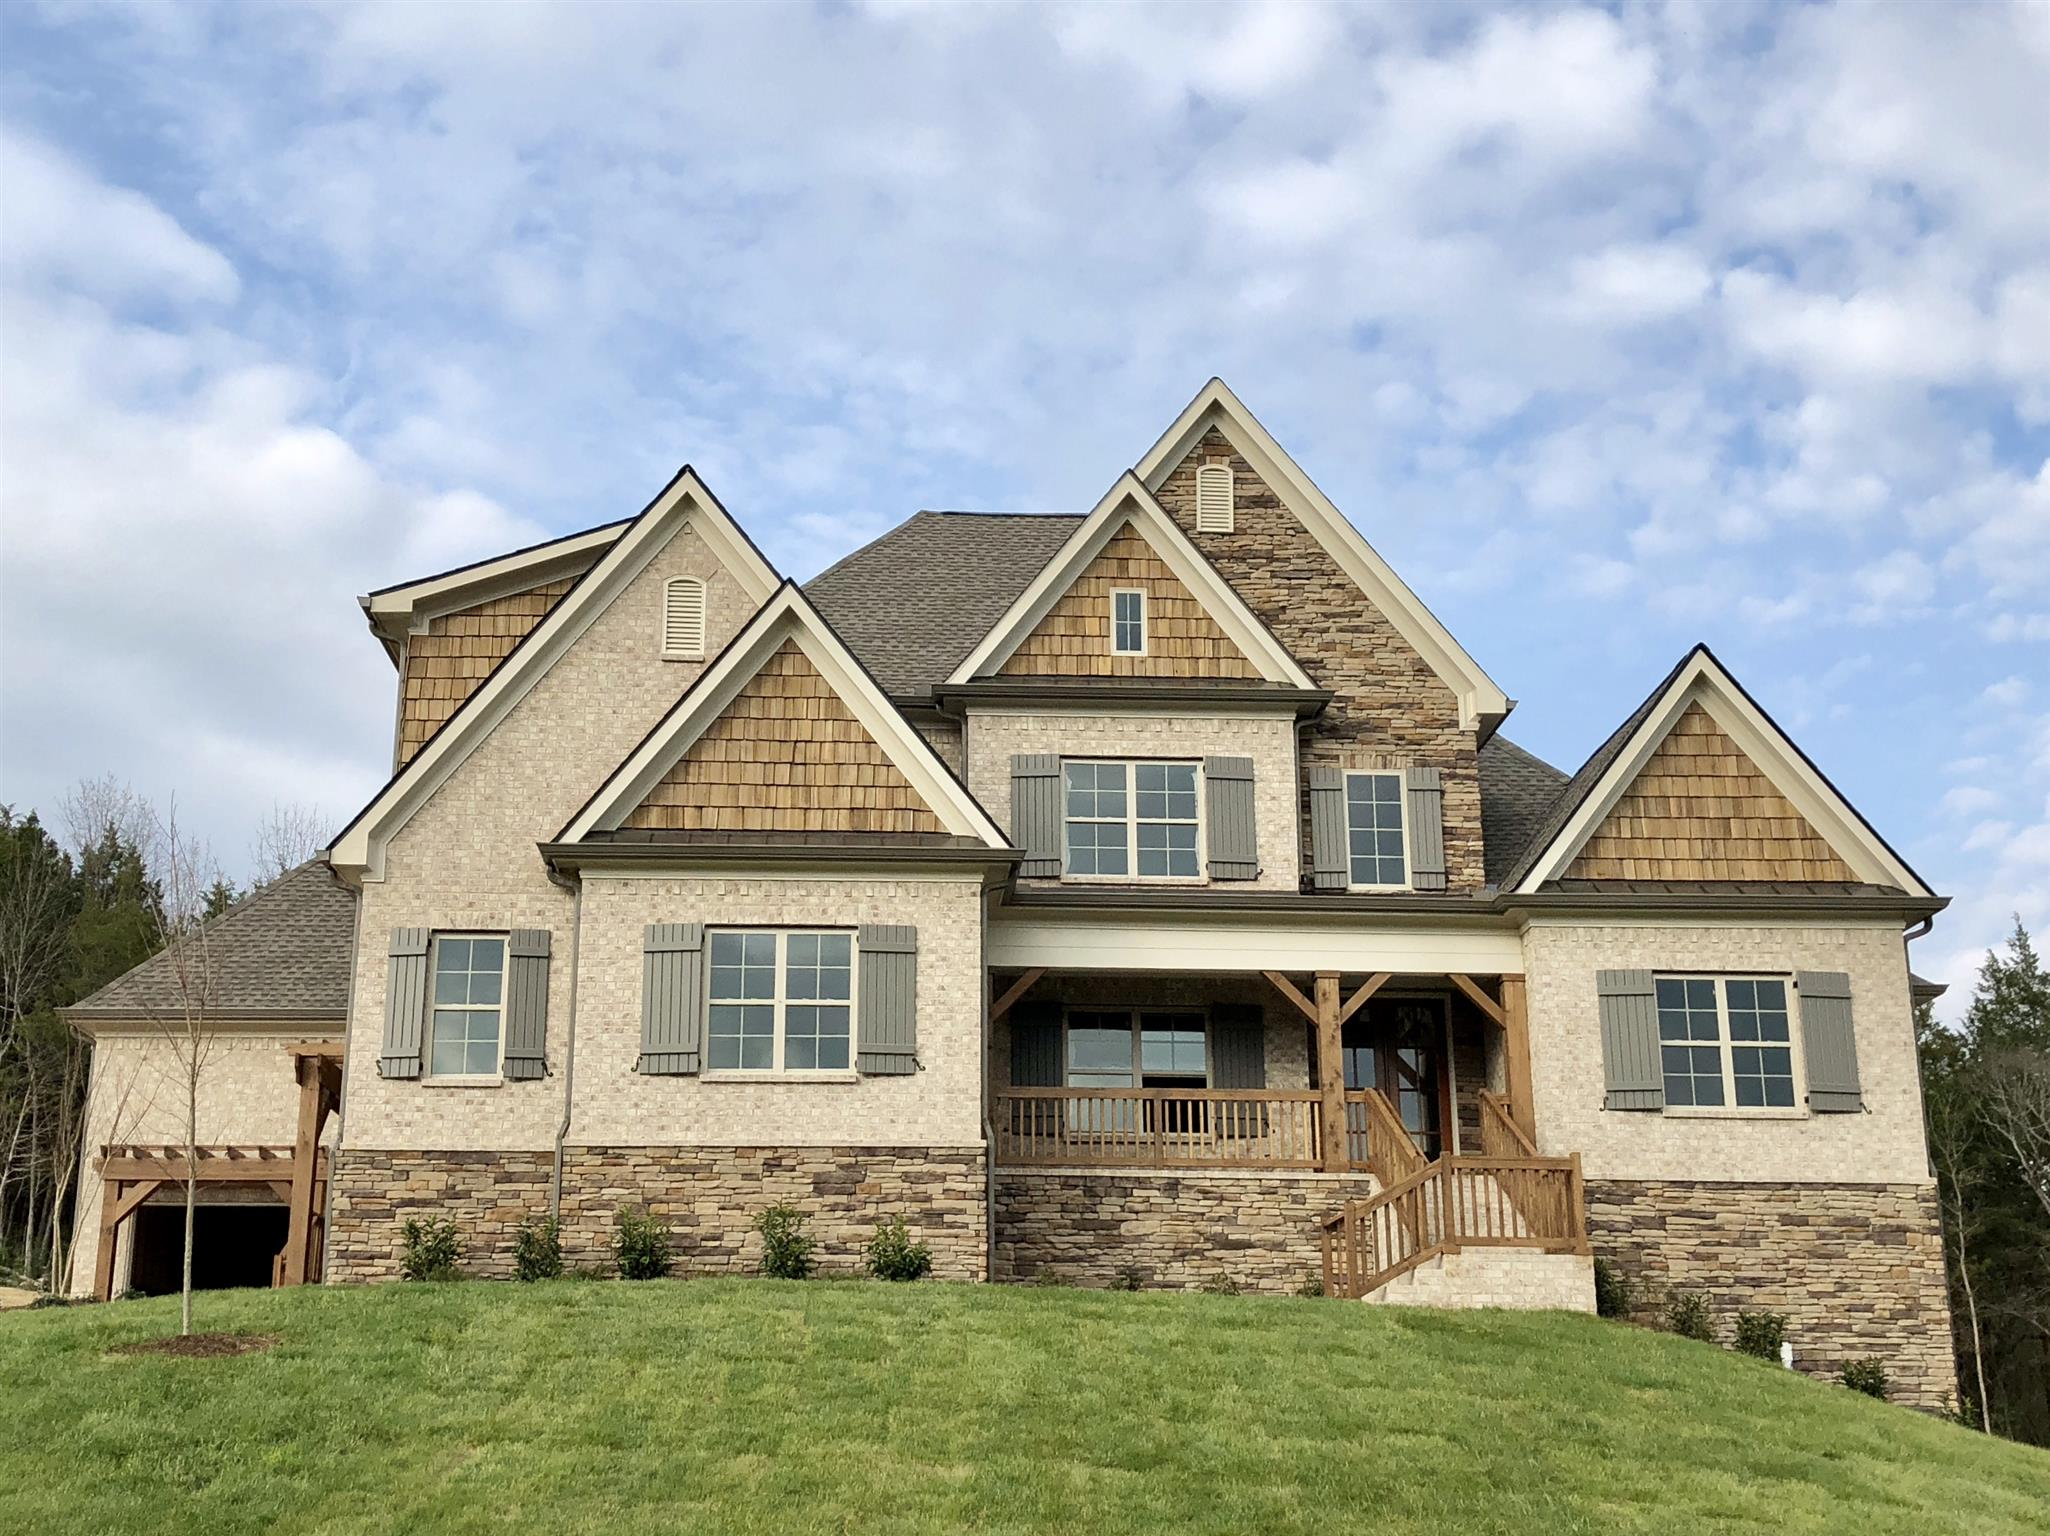 9608 Stonebluff Dr *lot 6, Brentwood, Tennessee